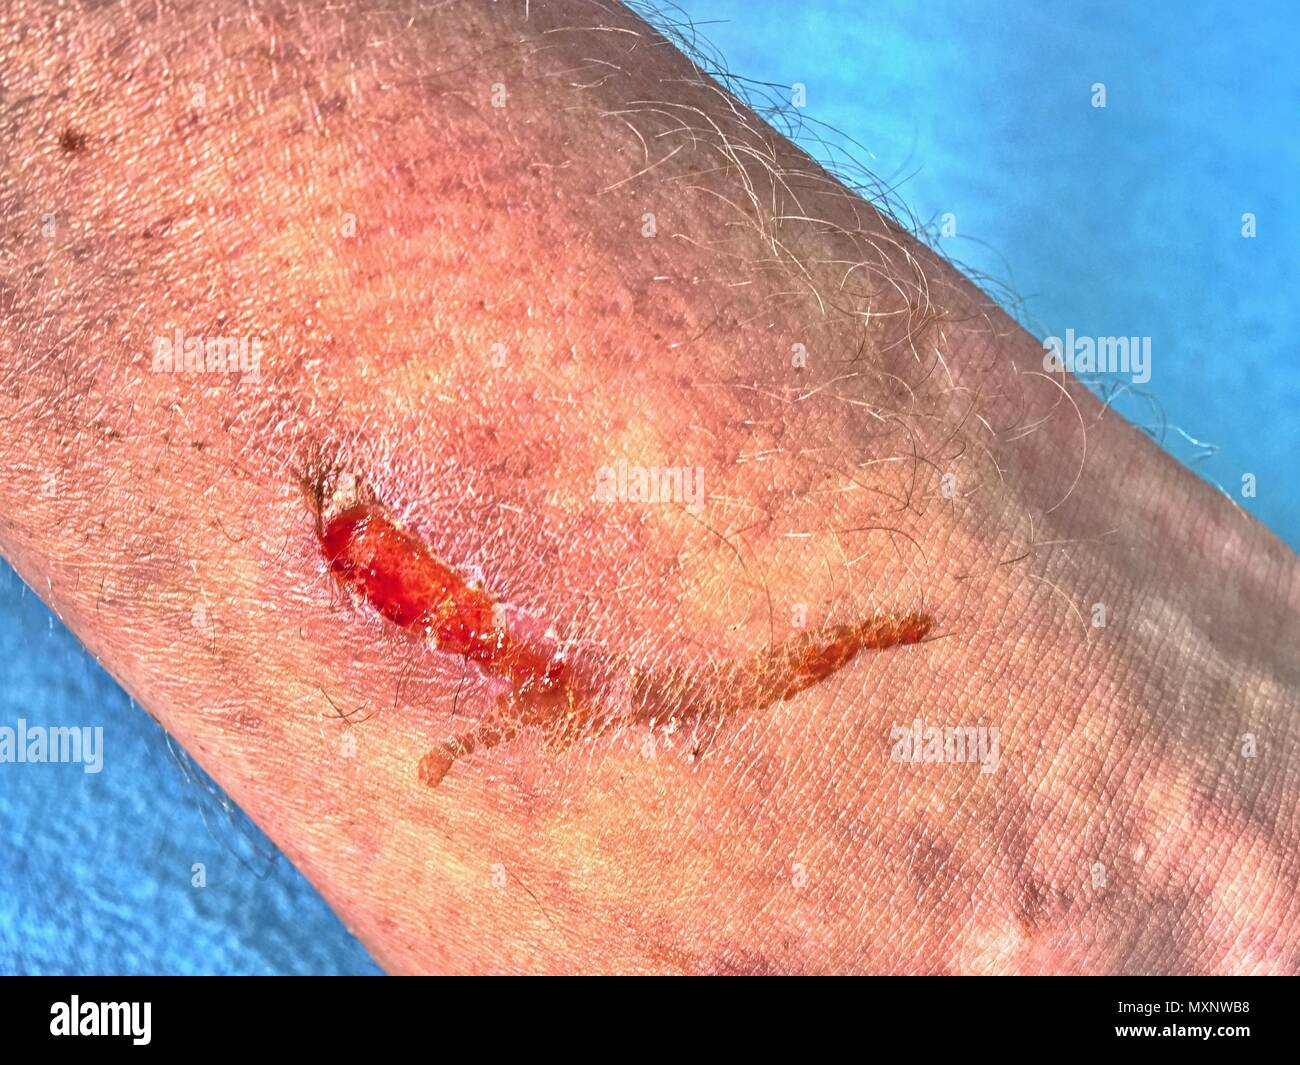 Wound on leg after a traffic accident. Hurt adult body. Wet bloody place. - Stock Image